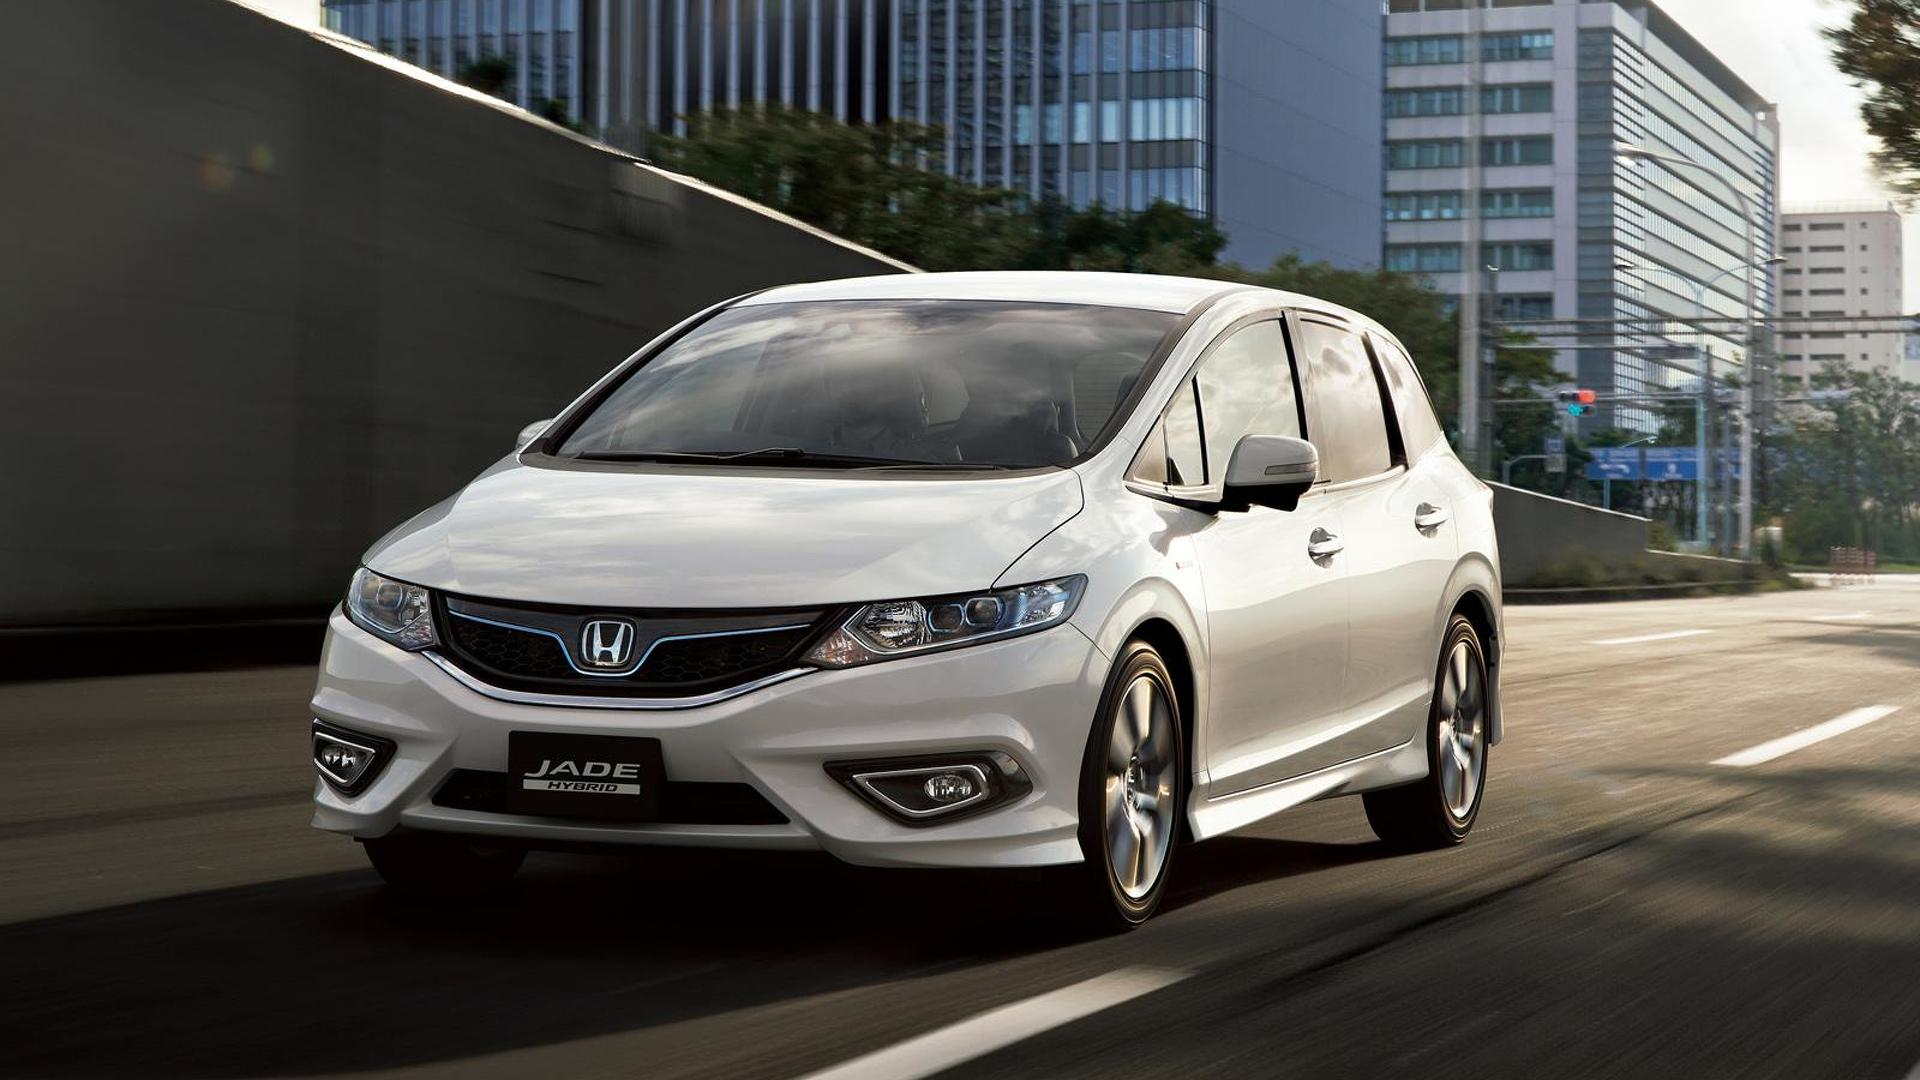 Honda Jade Hybrid introduced in Japan, goes on sale in February